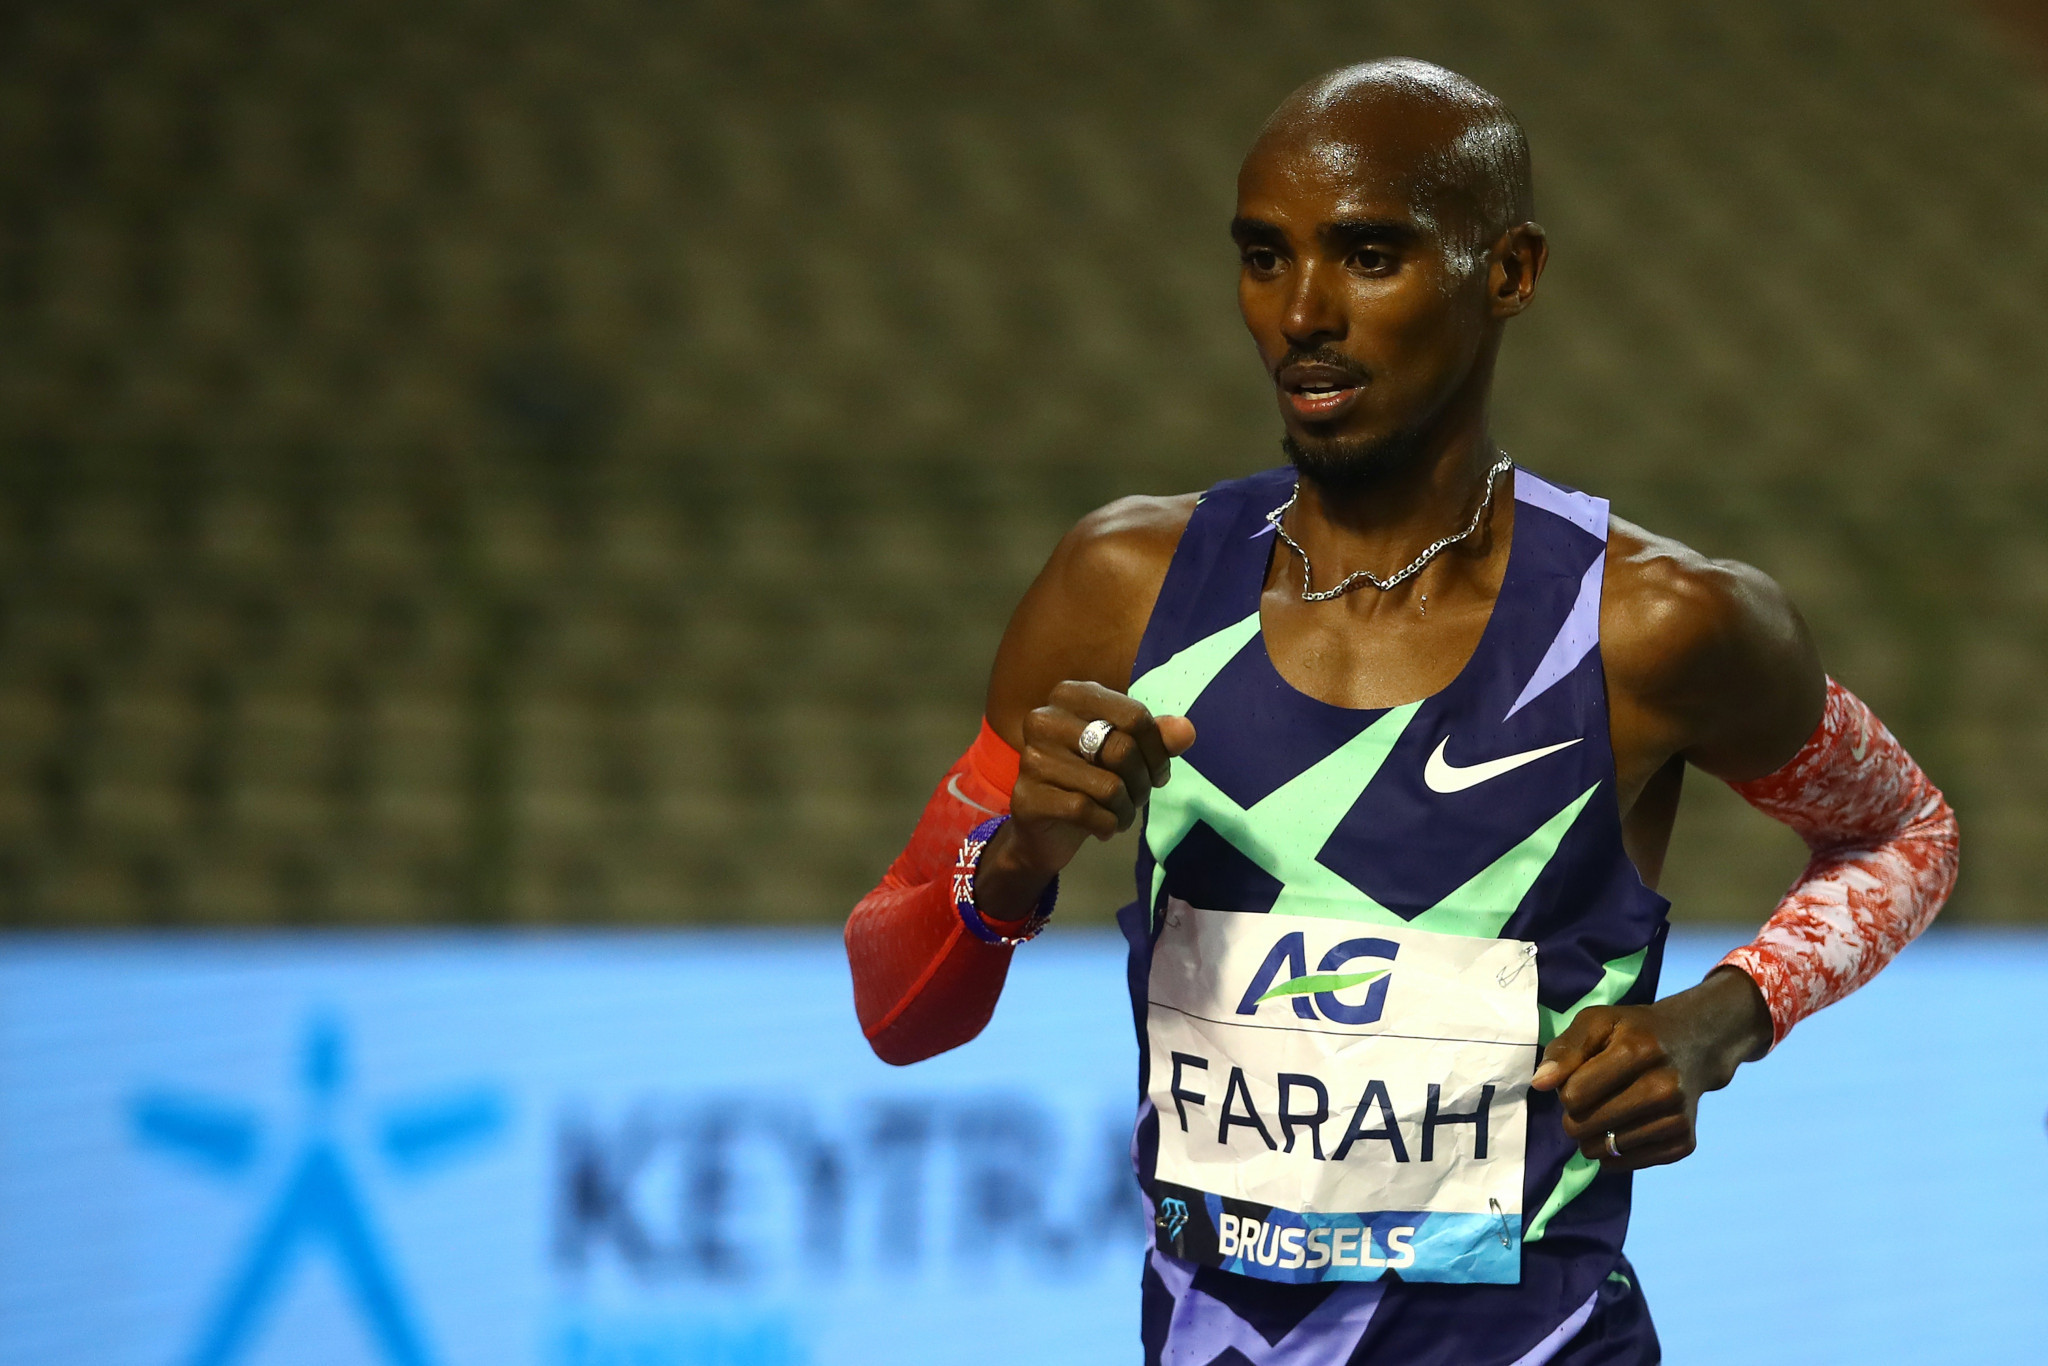 Farah and Hassan set one-hour world records at Brussels Diamond League meeting